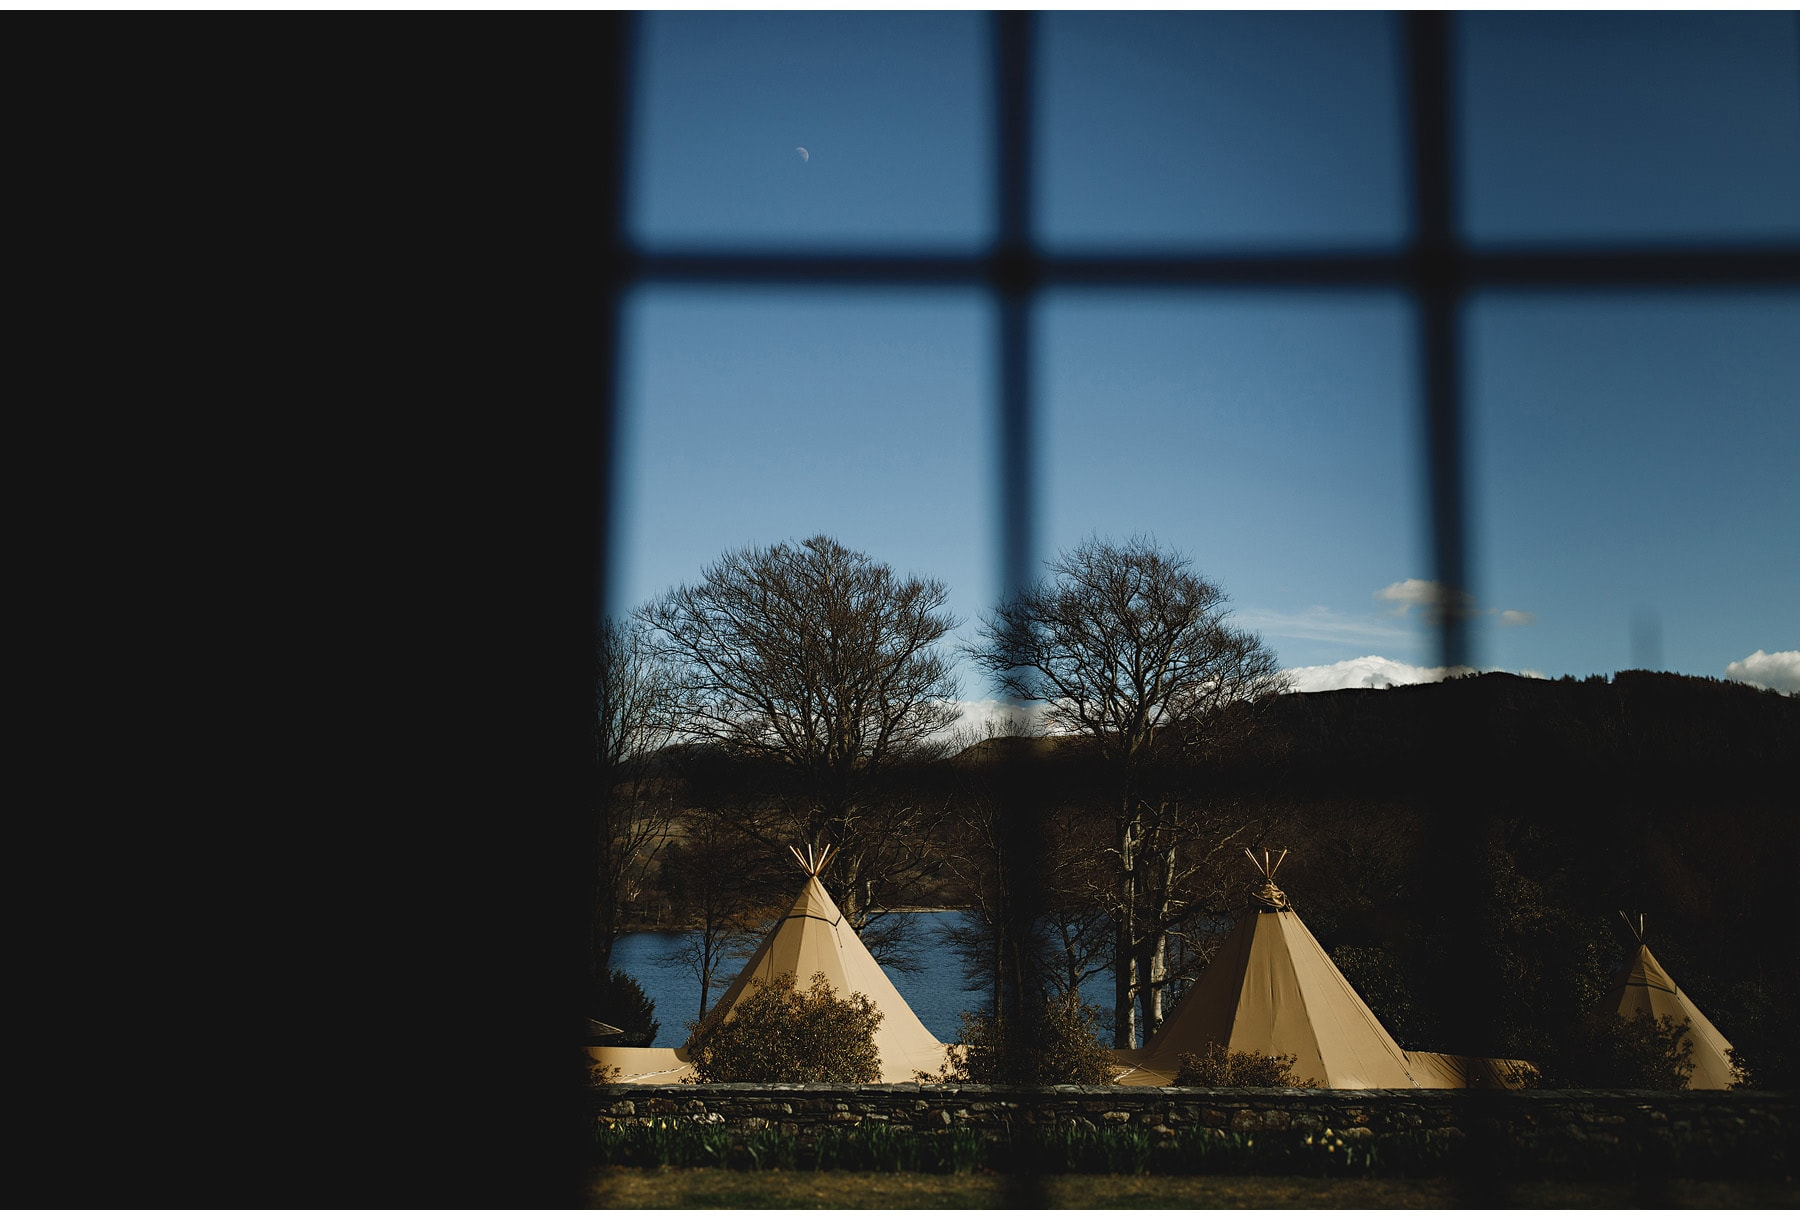 A view of a tipi with Derwent water in the background